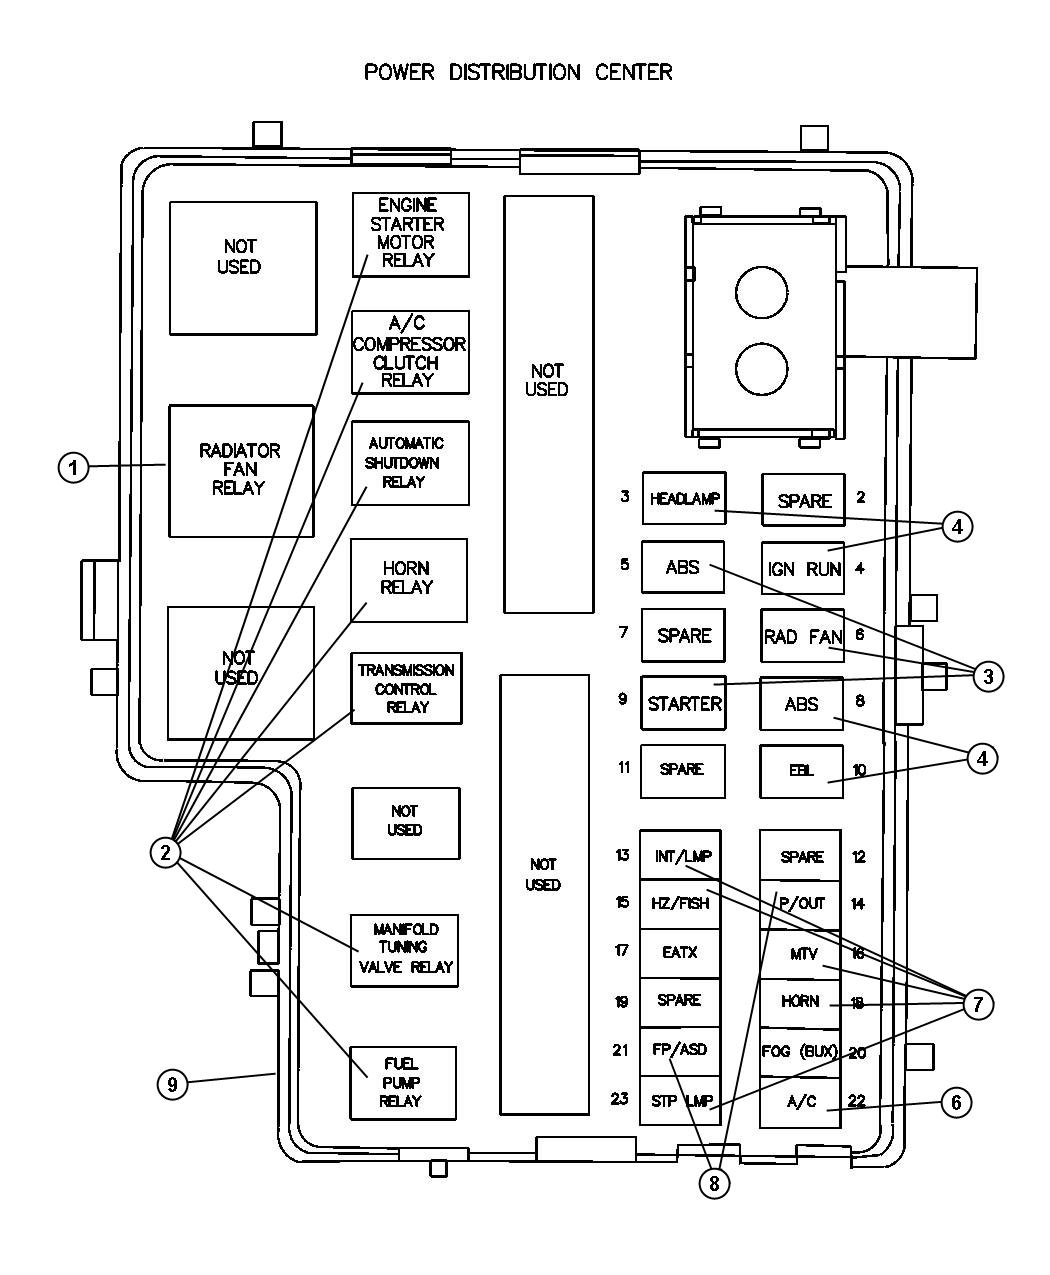 hight resolution of 2005 dodge stratus fuse box diagram schematic diagram 2003 ford contour fuse box fuse diagram for